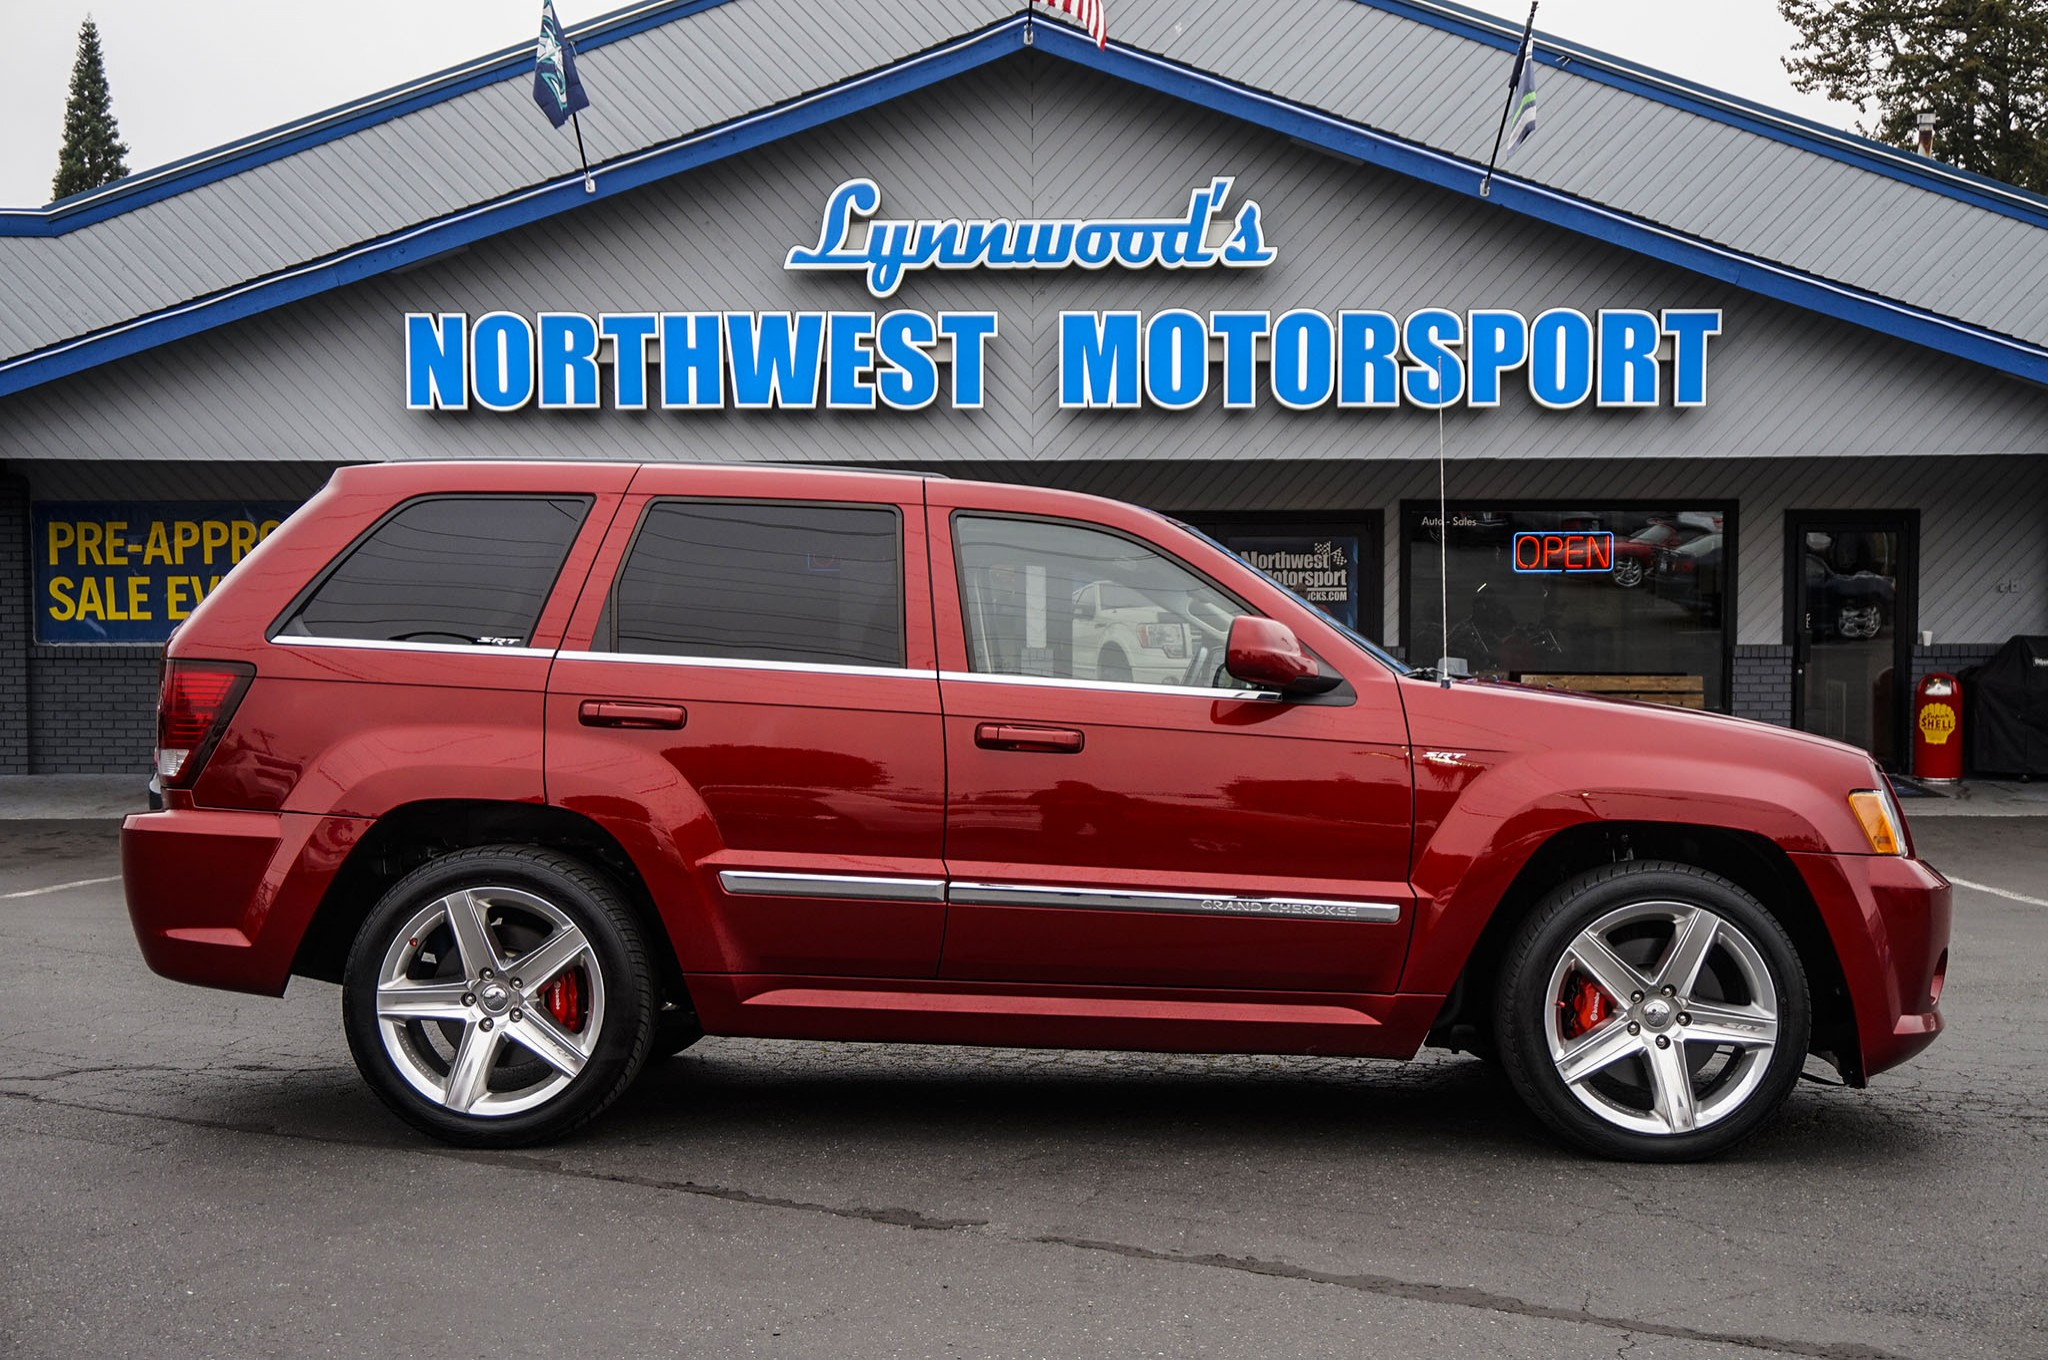 2009 jeep grand cherokee srt 8 4x4 - northwest motorsport